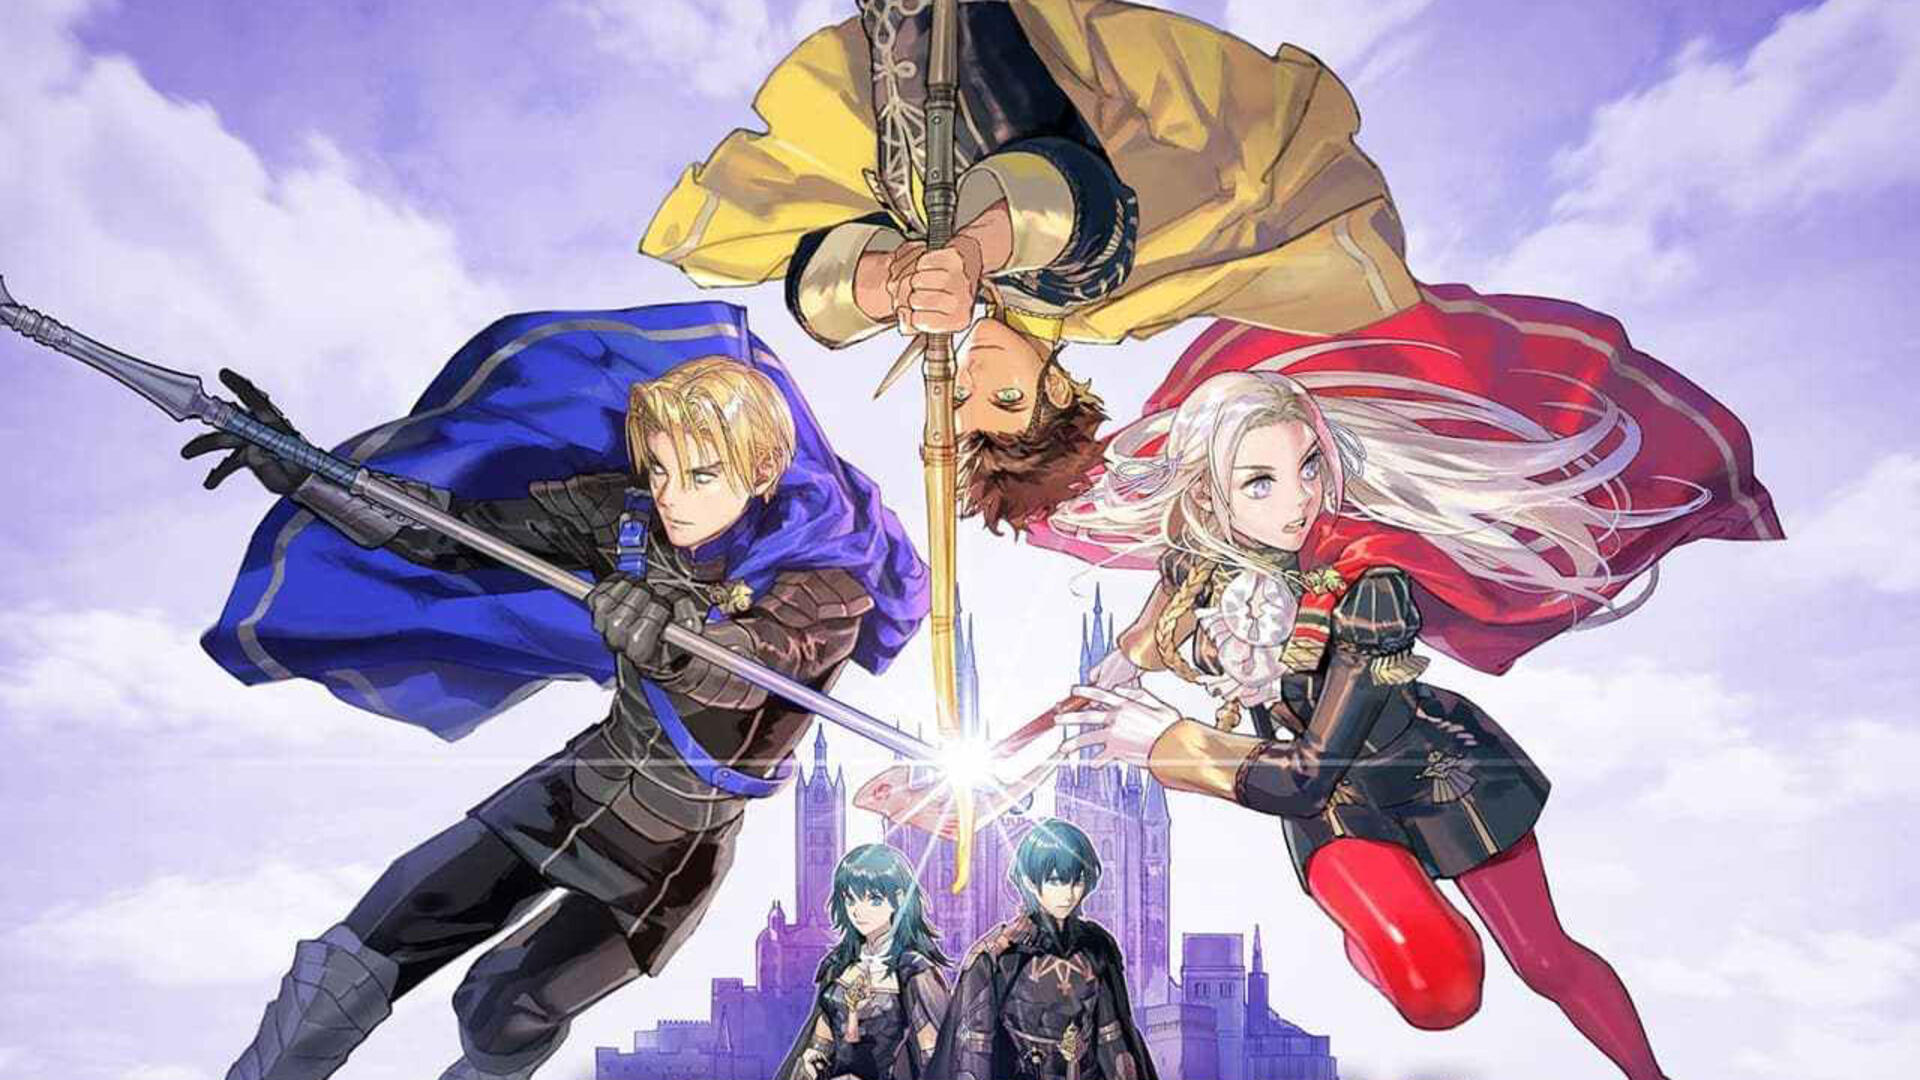 Fire Emblem: Three Houses is Excellent, But Its Excellence